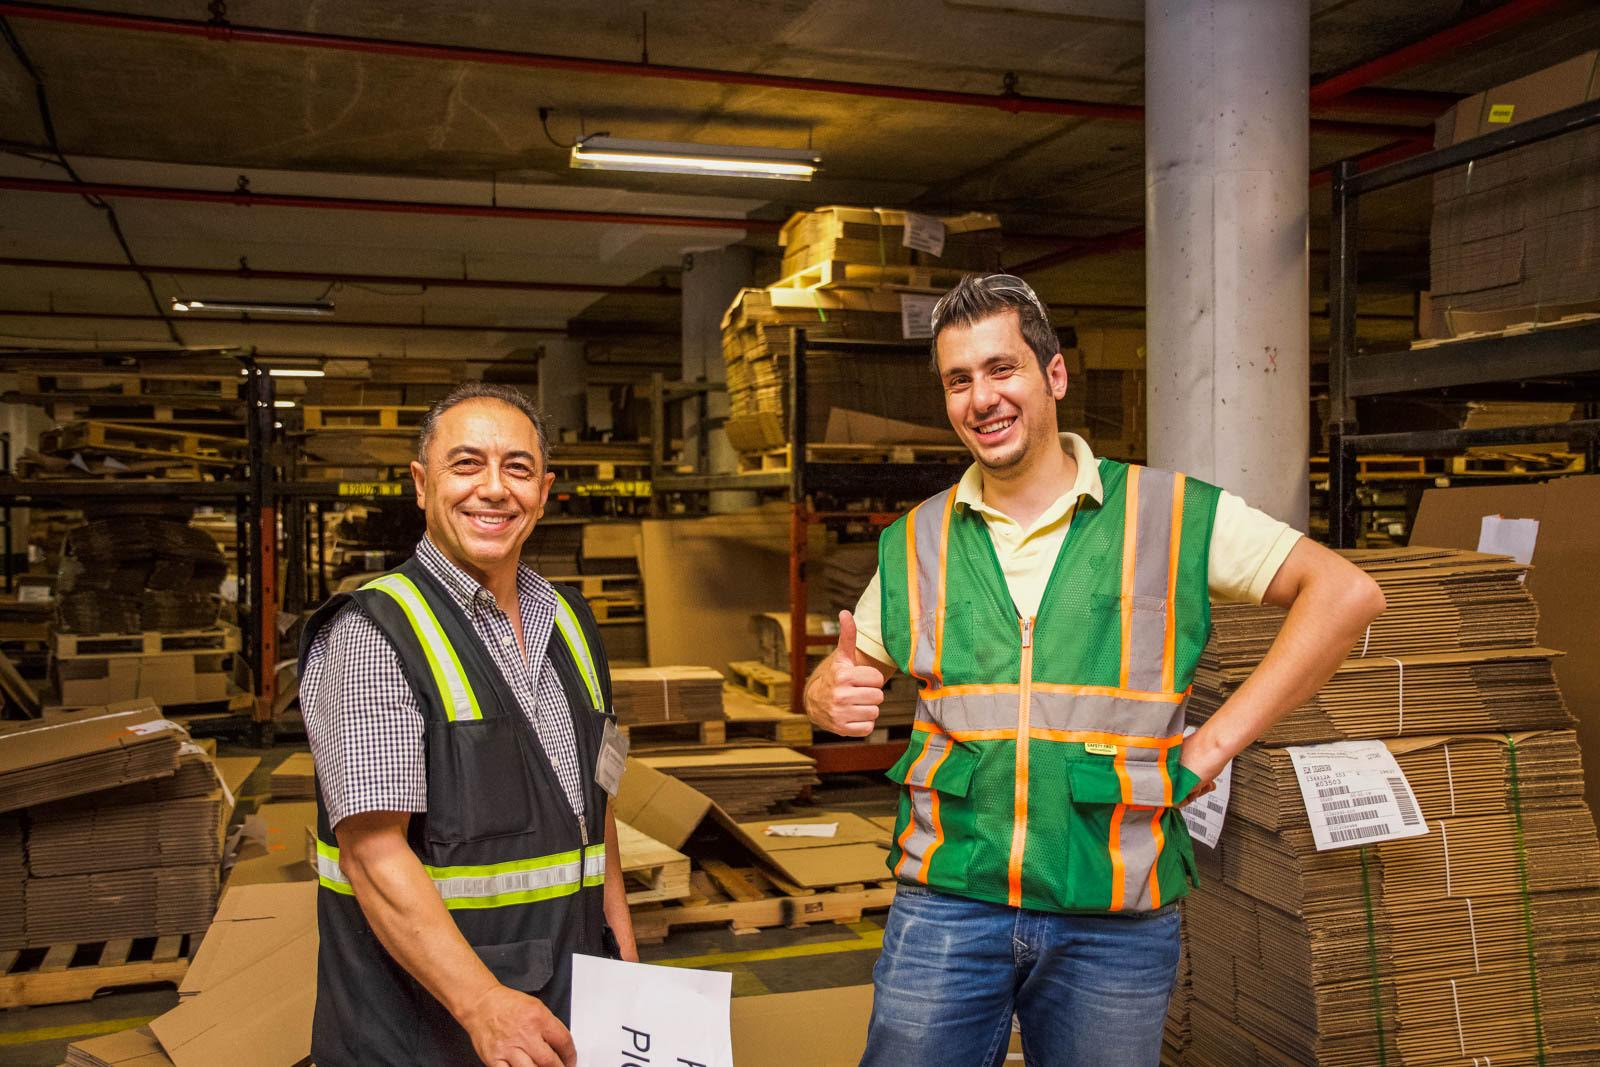 Smiling warehouse employees give a thumbs up